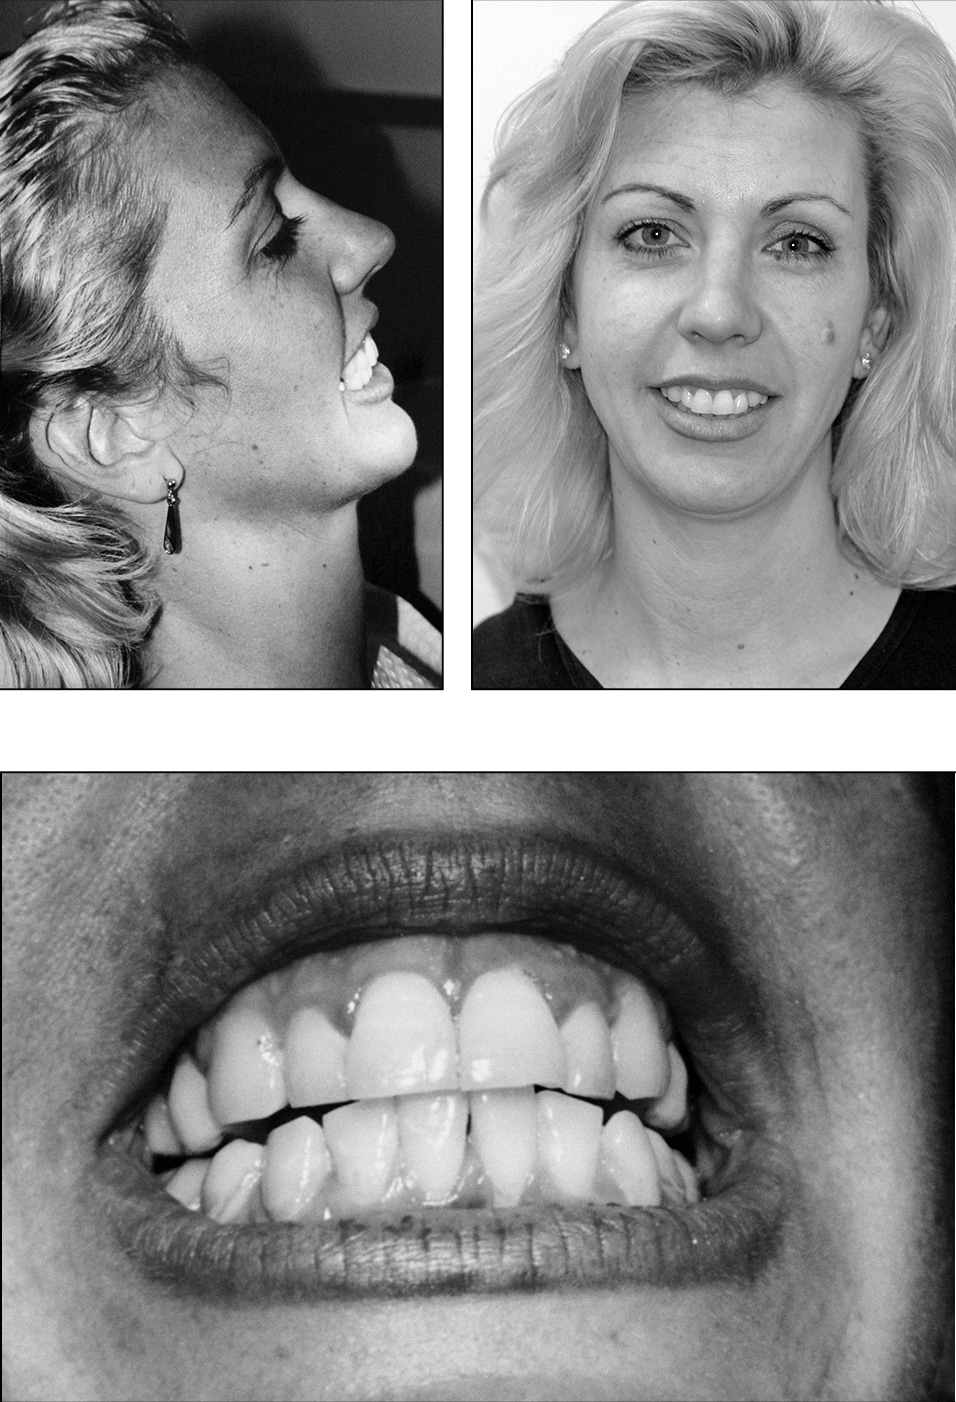 breathing airway dental cranial fat-soluble vitamins A D E K2 Dr. Weston A. Price Daniel Garliner muscles TMJ eruption pathology deformities palate tongue swallowing thrust bite orthodontic